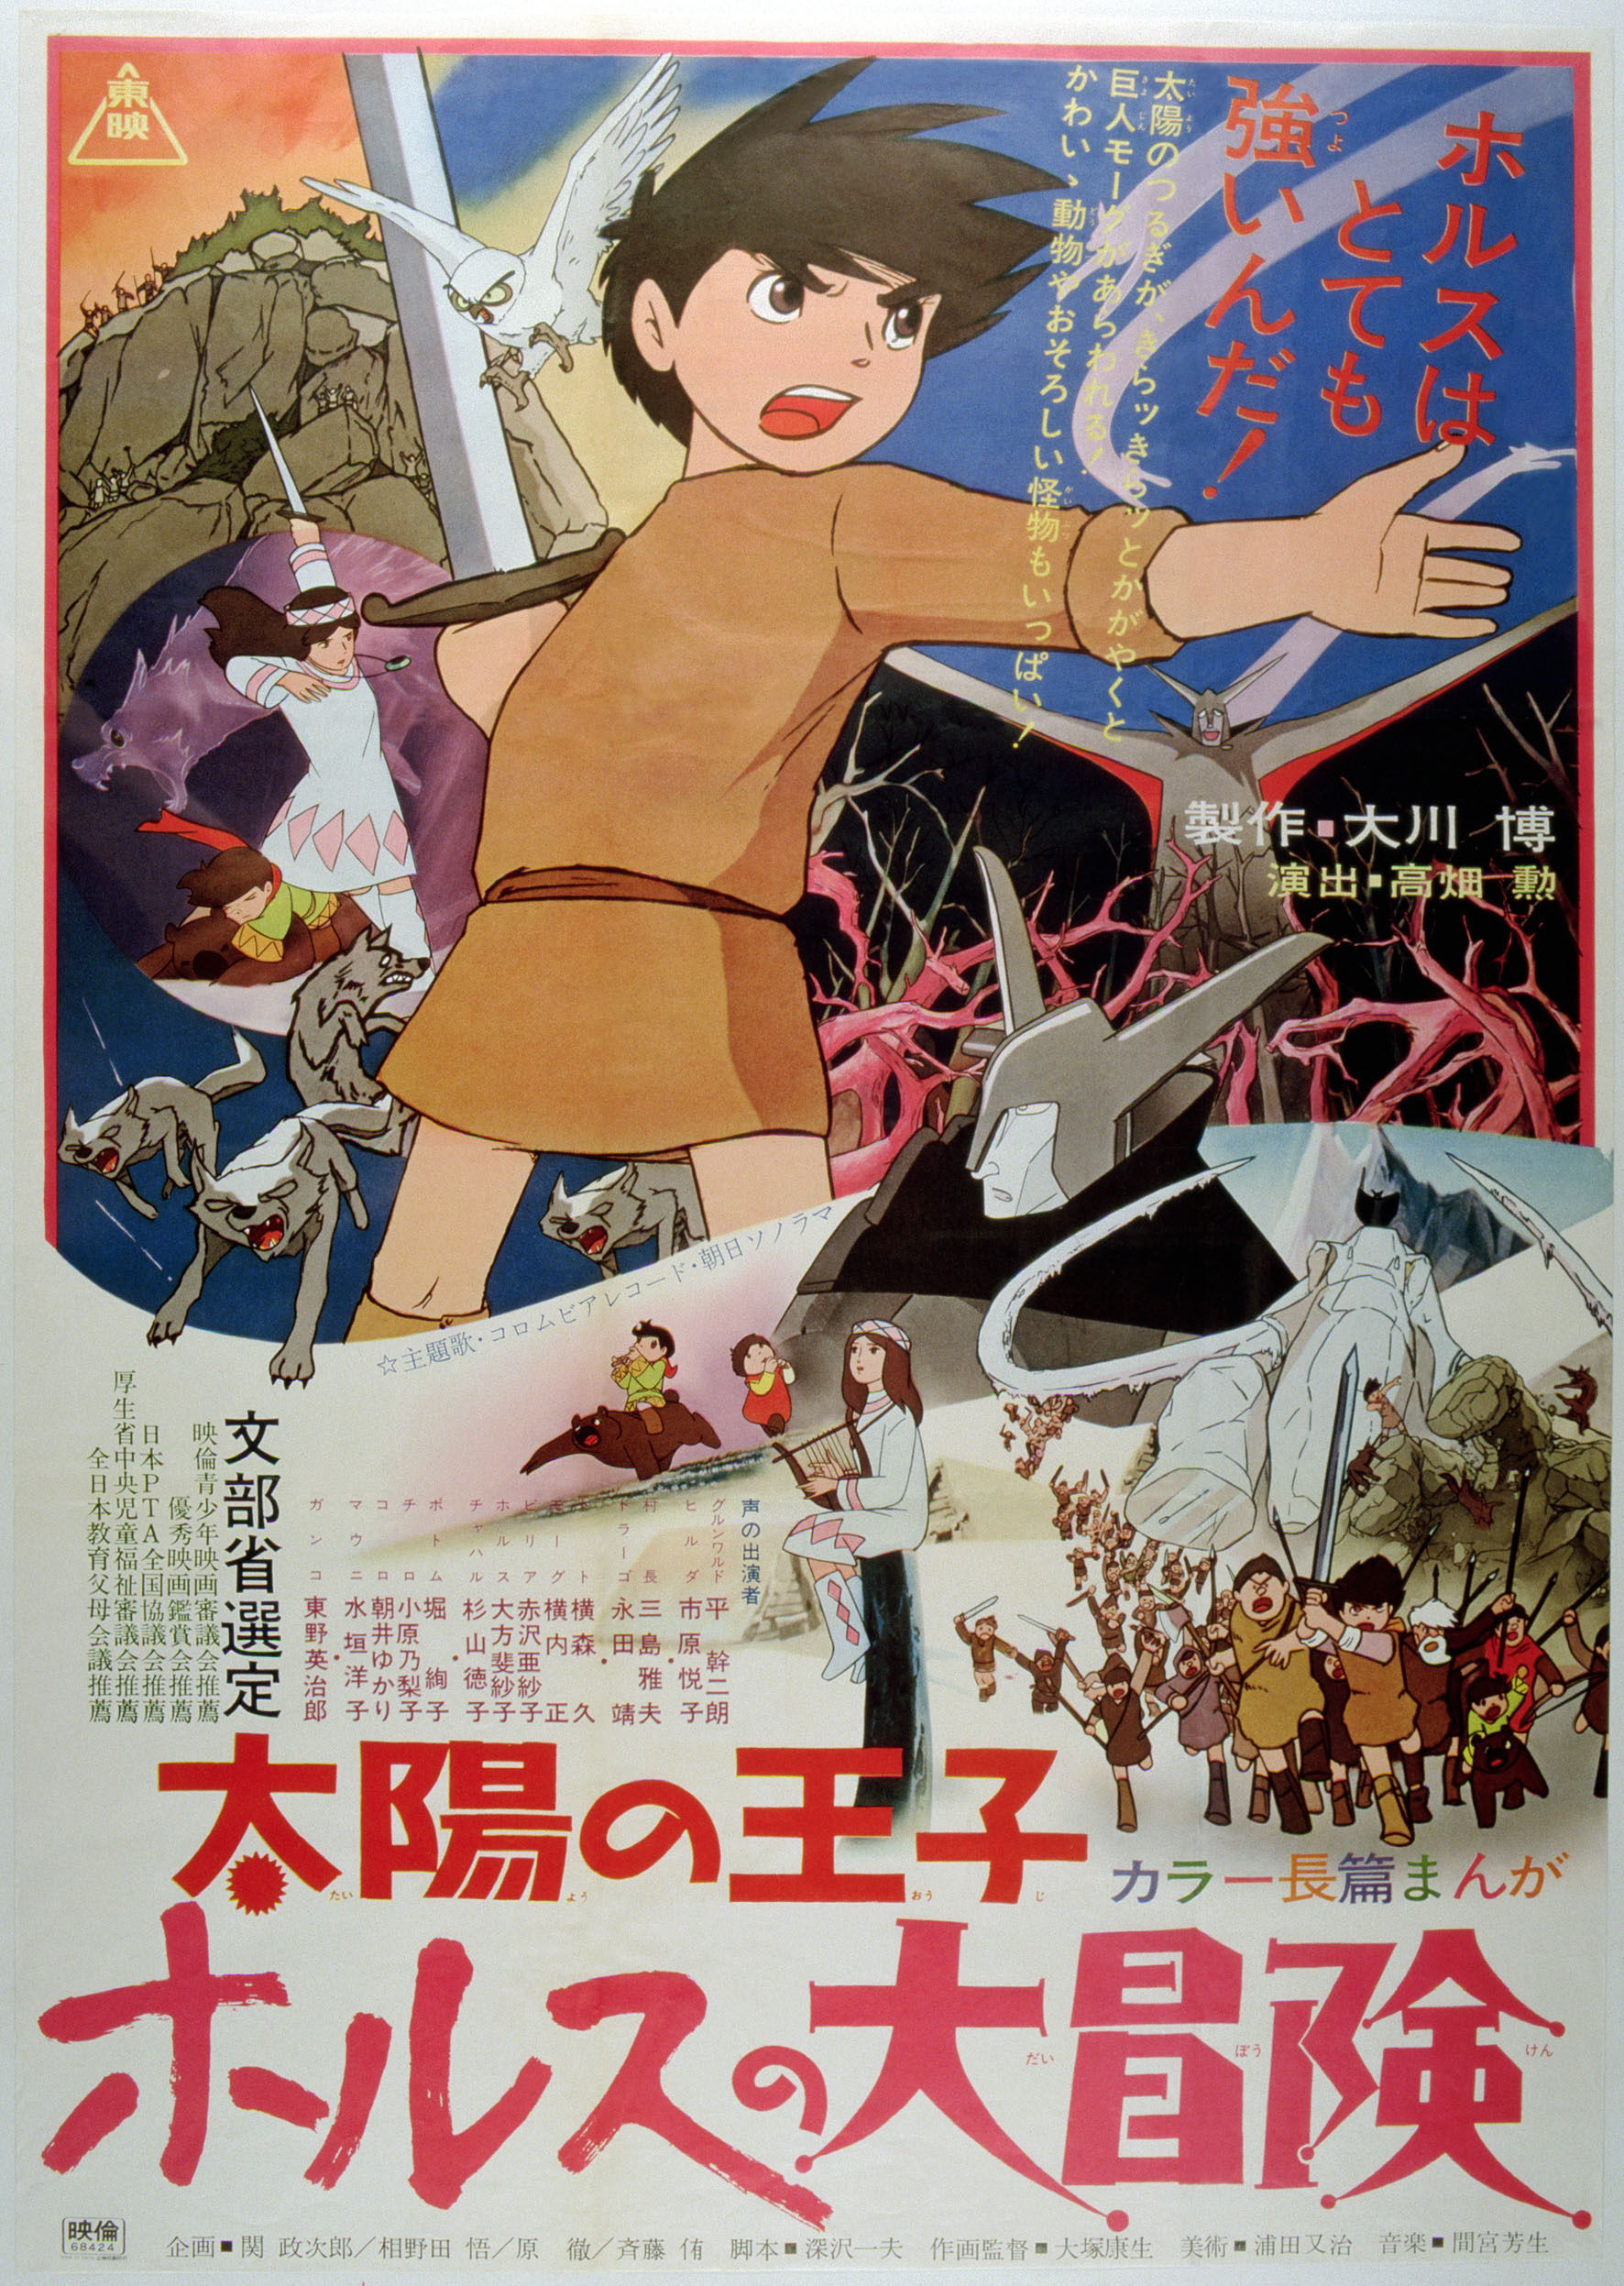 Horus prince du soleil Taiyo no oji : Horusu no daiboken / Prince of the Sun : The Great Adventure of Horus Year: 1968 - japan Animation affiche, poster japonaise Director: Isao Takahata